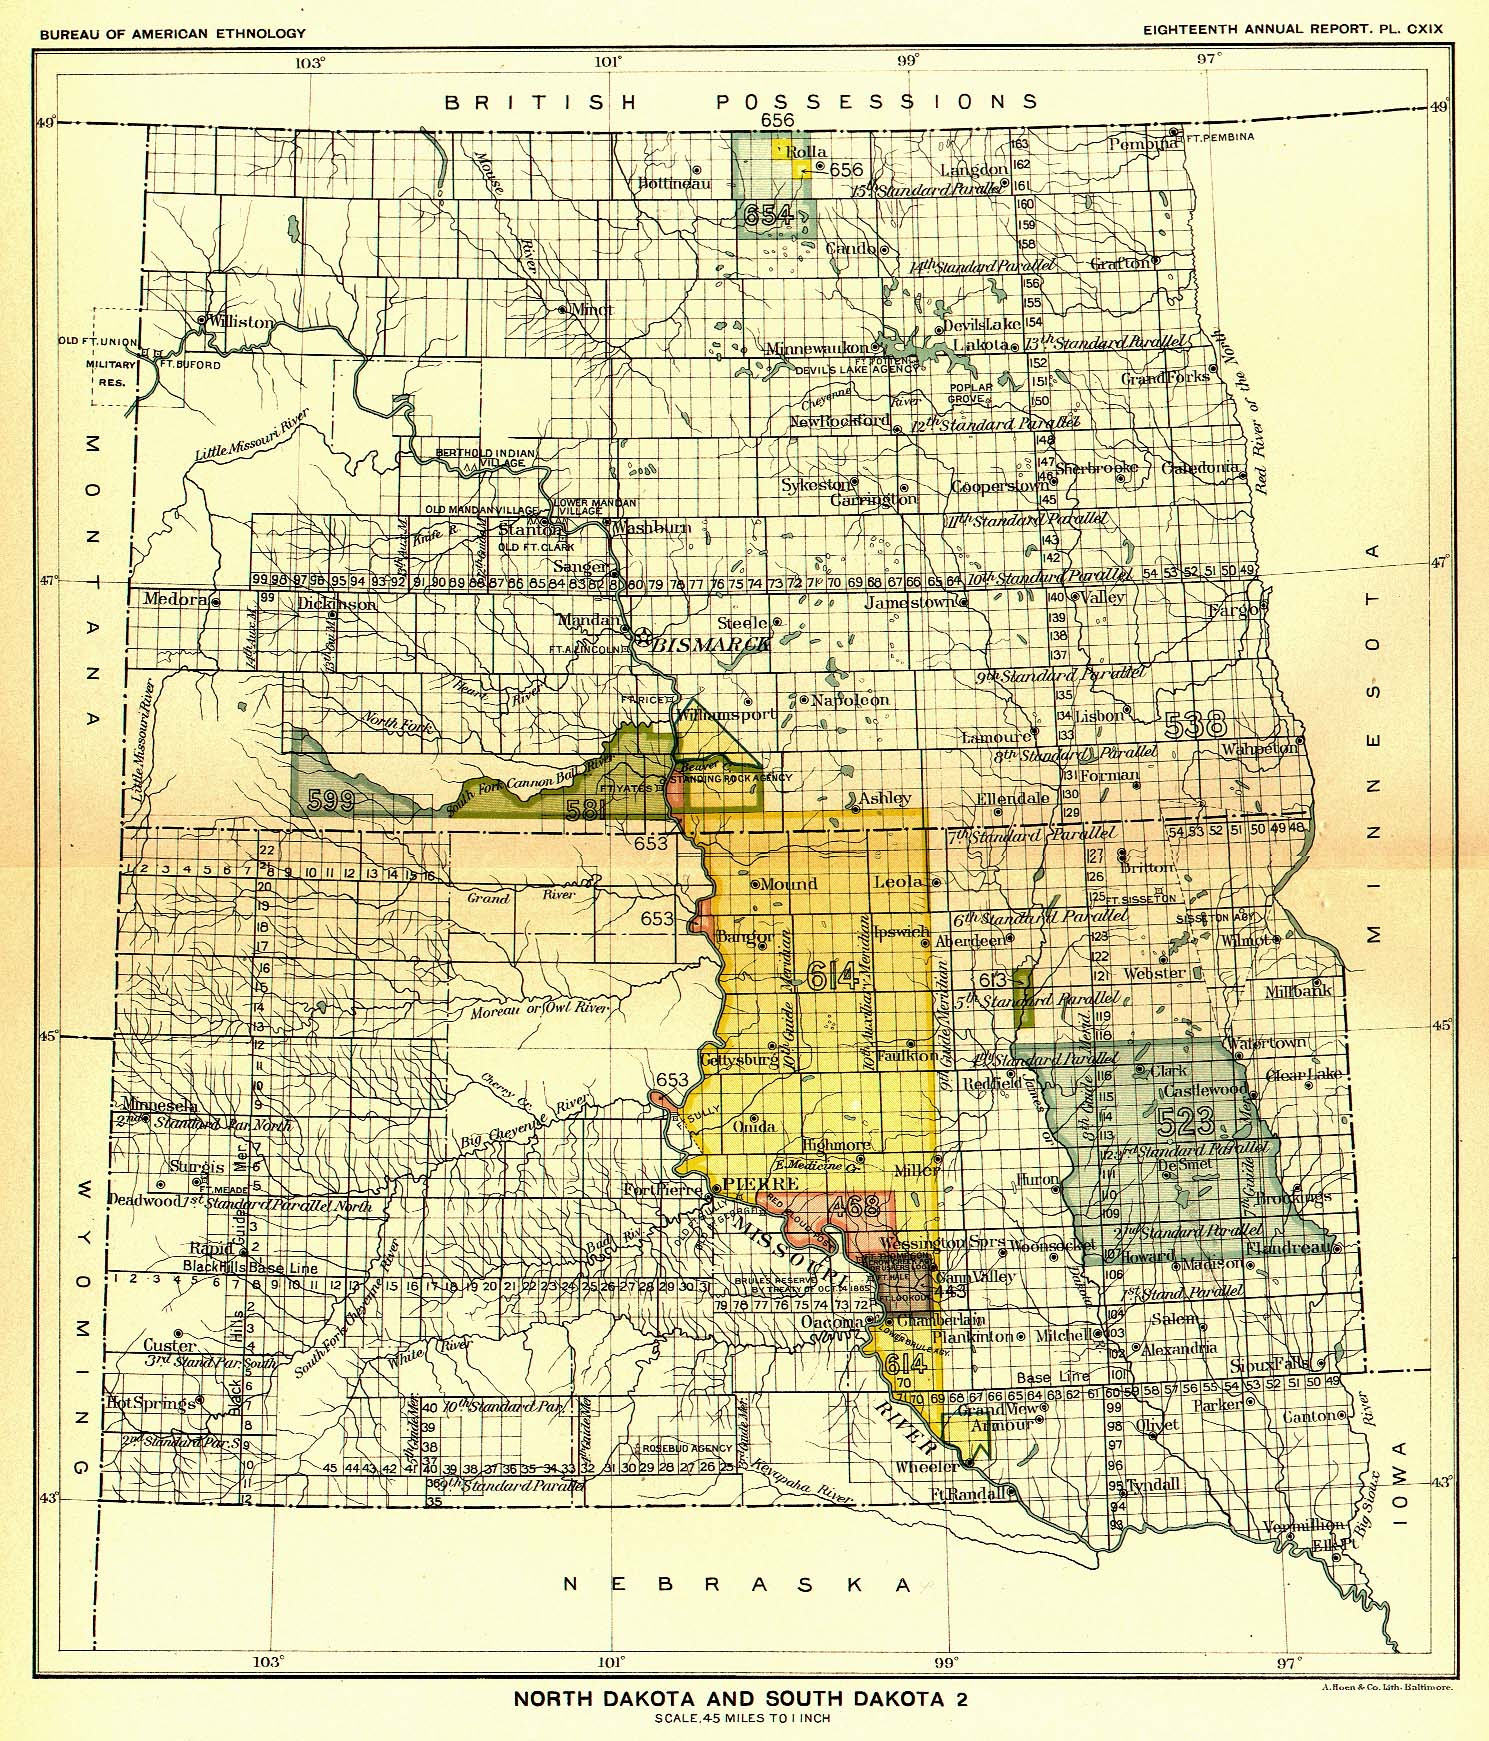 Indian Land Cessions In The U S North Dakota And South Dakota - Us map with south dakota